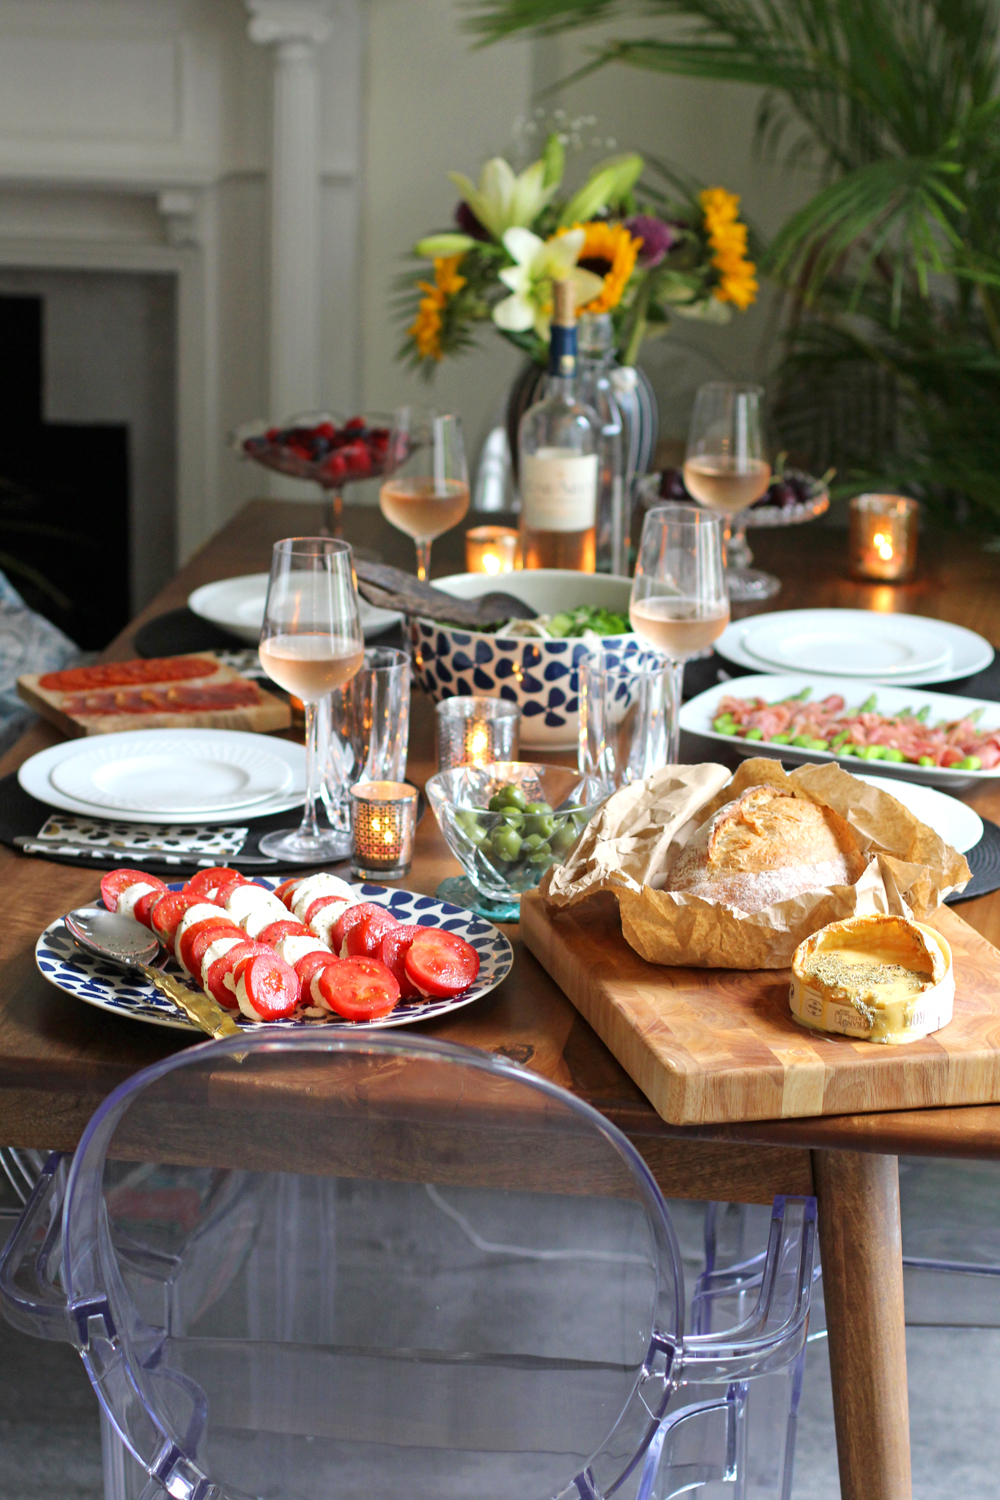 Summer dining - UK lifestyle blog